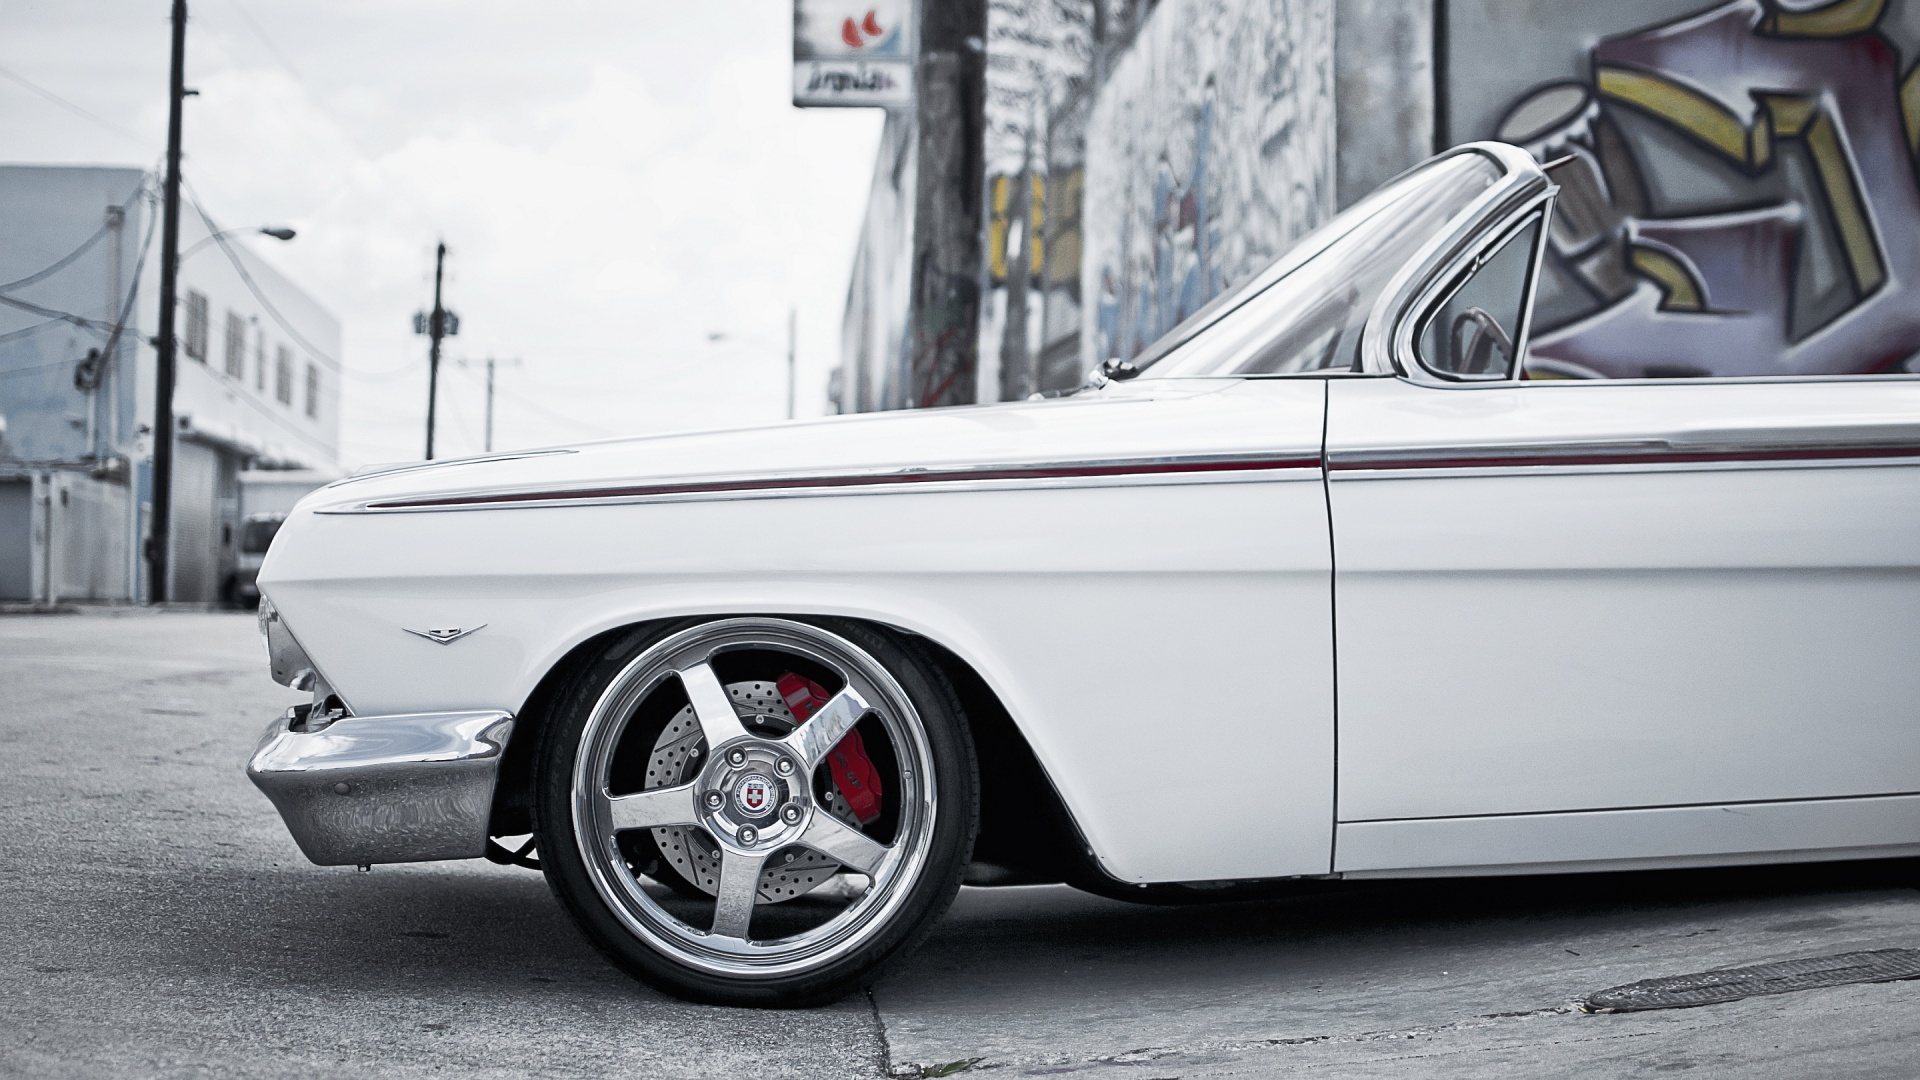 White Impala Wallpaper